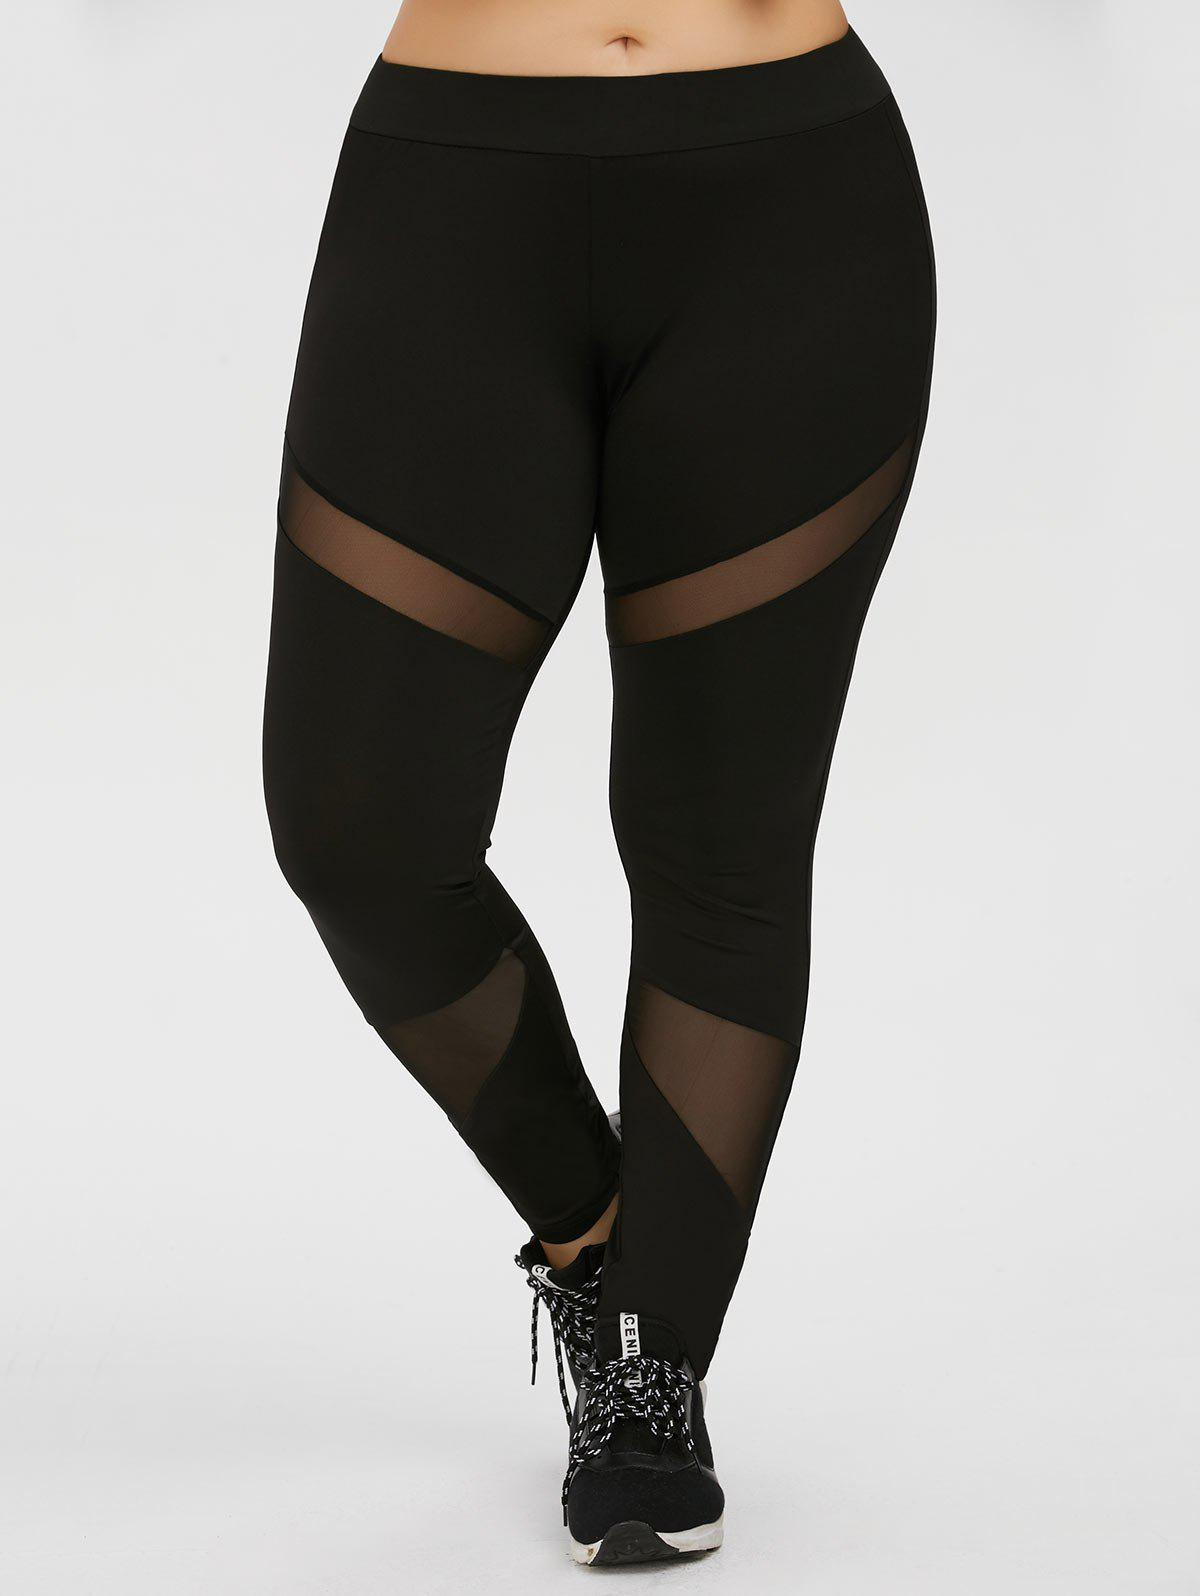 Plus Size Mesh Panel Workout LeggingsWOMEN<br><br>Size: 4XL; Color: BLACK; Style: Fashion; Length: Ninth; Material: Cotton Blends,Polyester,Spandex; Fit Type: Skinny; Waist Type: High; Closure Type: Elastic Waist; Pattern Type: Solid; Pant Style: Pencil Pants; Weight: 0.2700kg; Package Contents: 1 x Leggings;